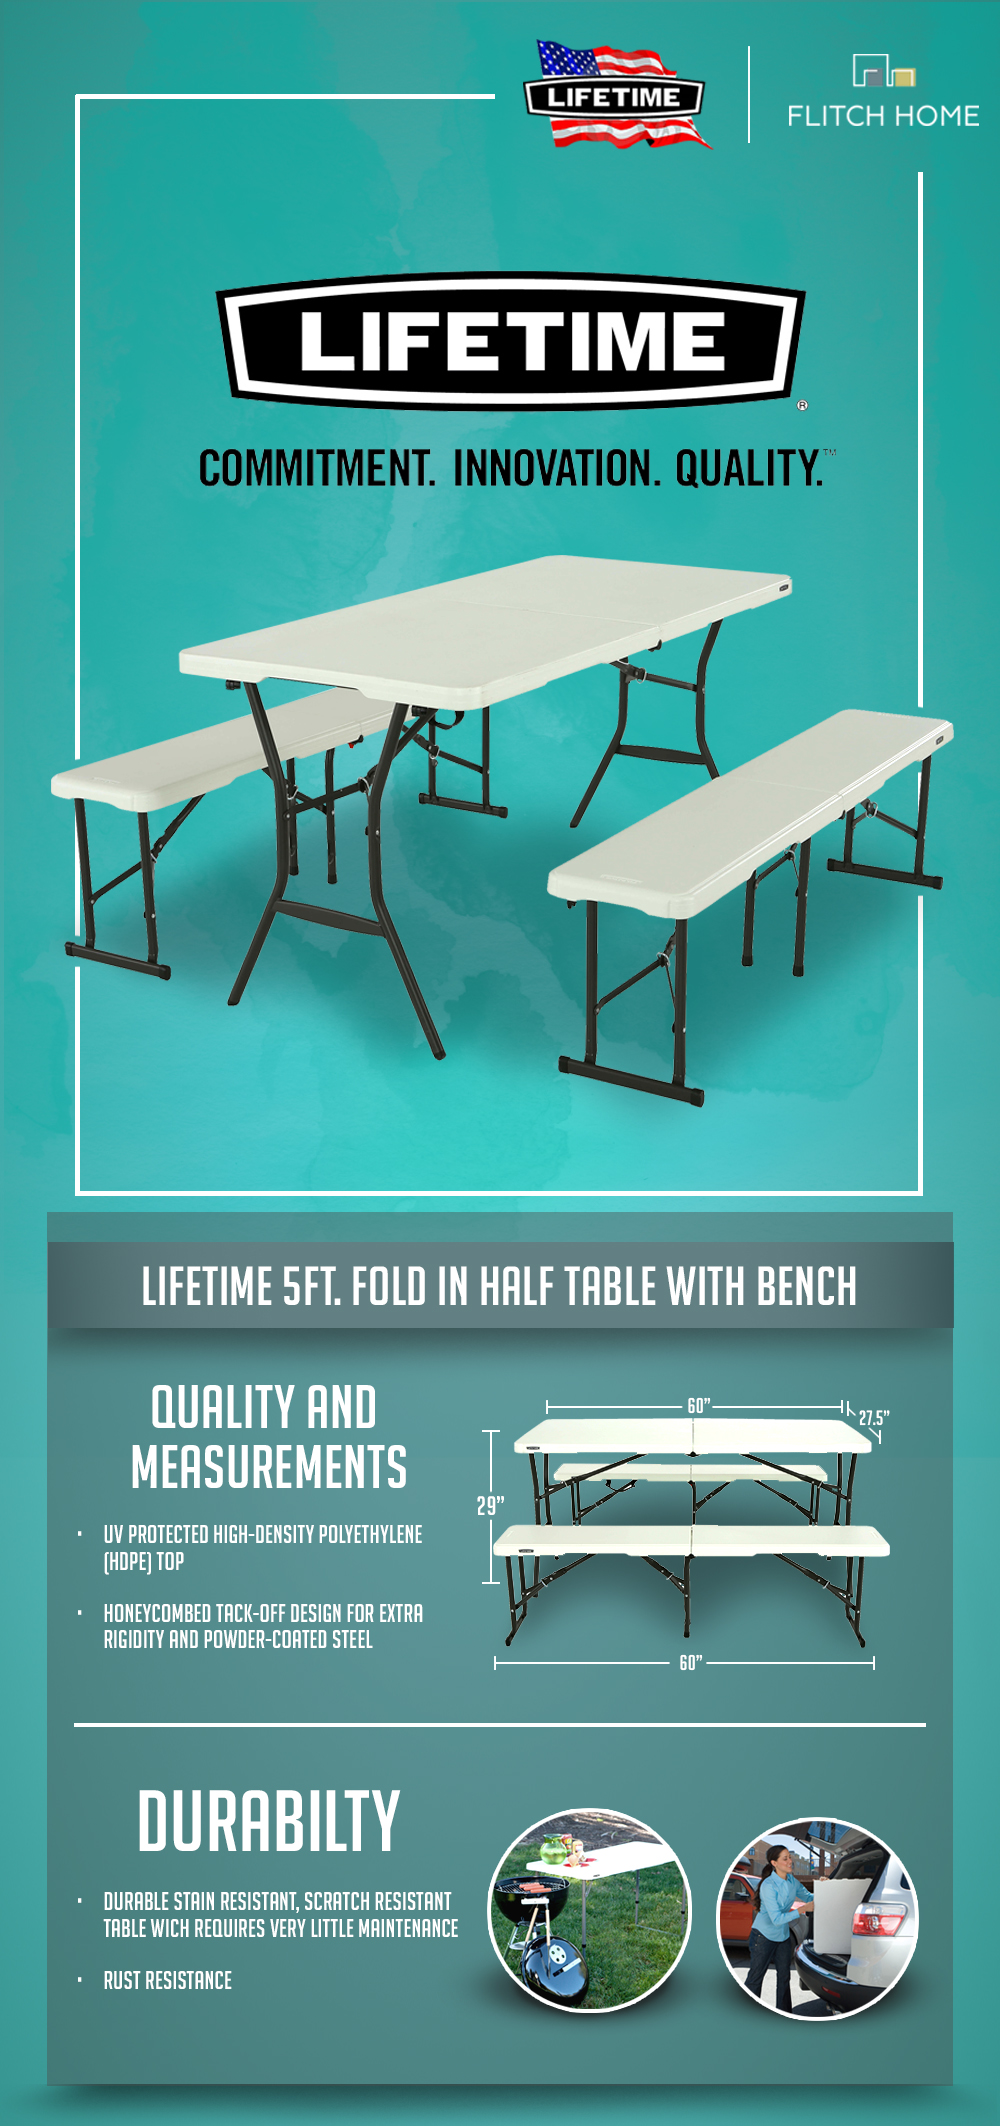 Pleasant Lifetime 5 Ft Fold In Half Table With Bench Combo Set Download Free Architecture Designs Rallybritishbridgeorg